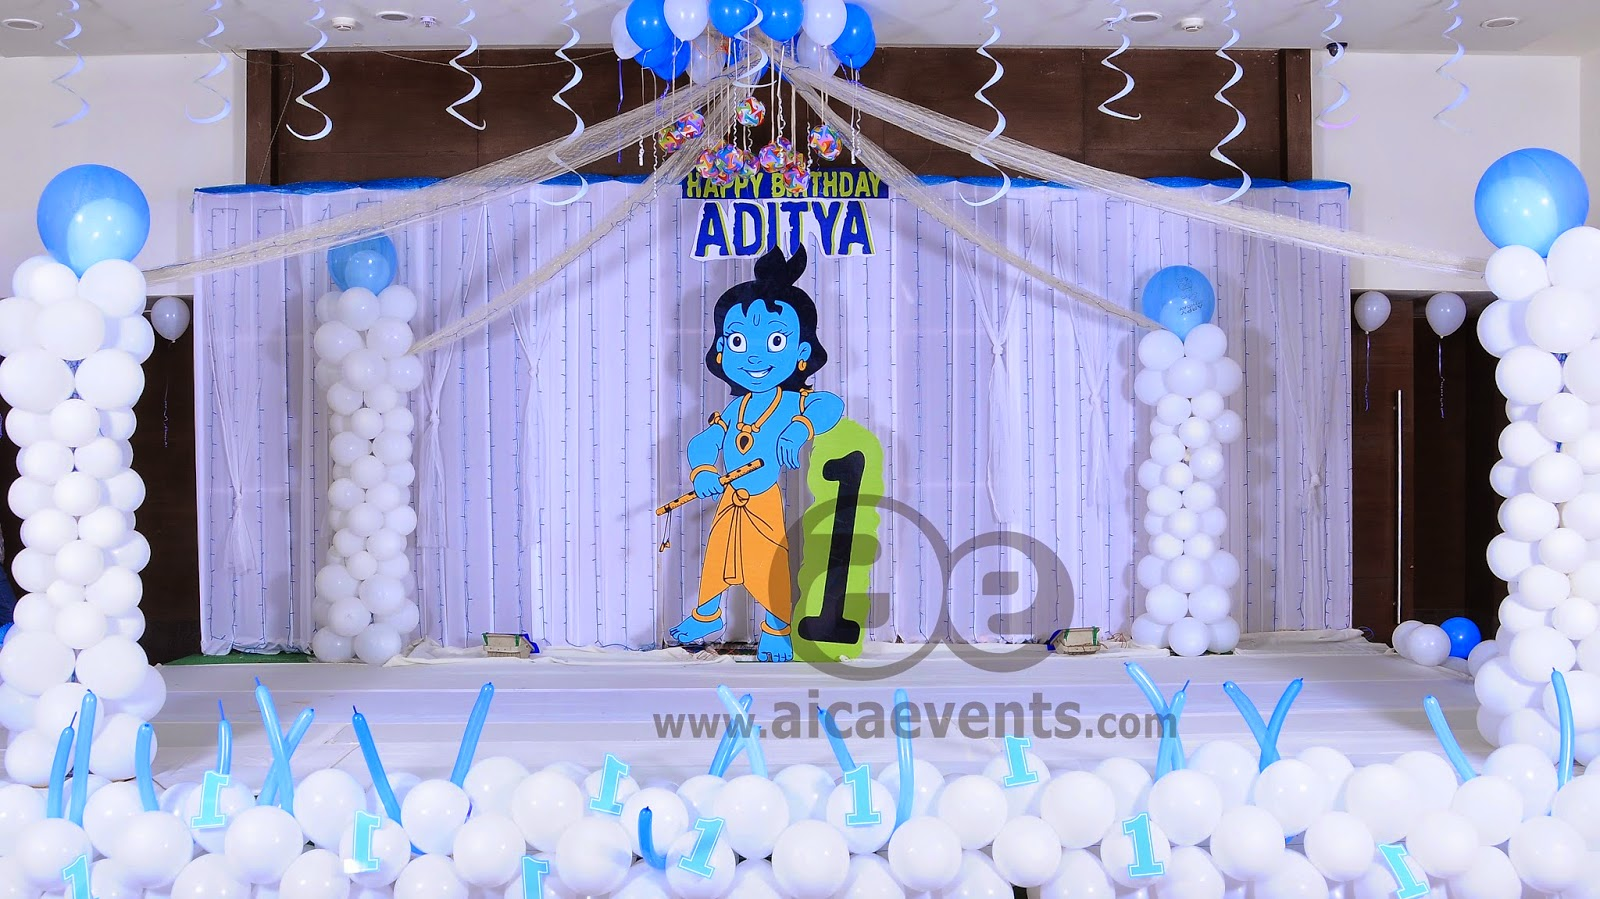 Aicaevents krishna theme birthday party decorations for Balloon decoration for stage